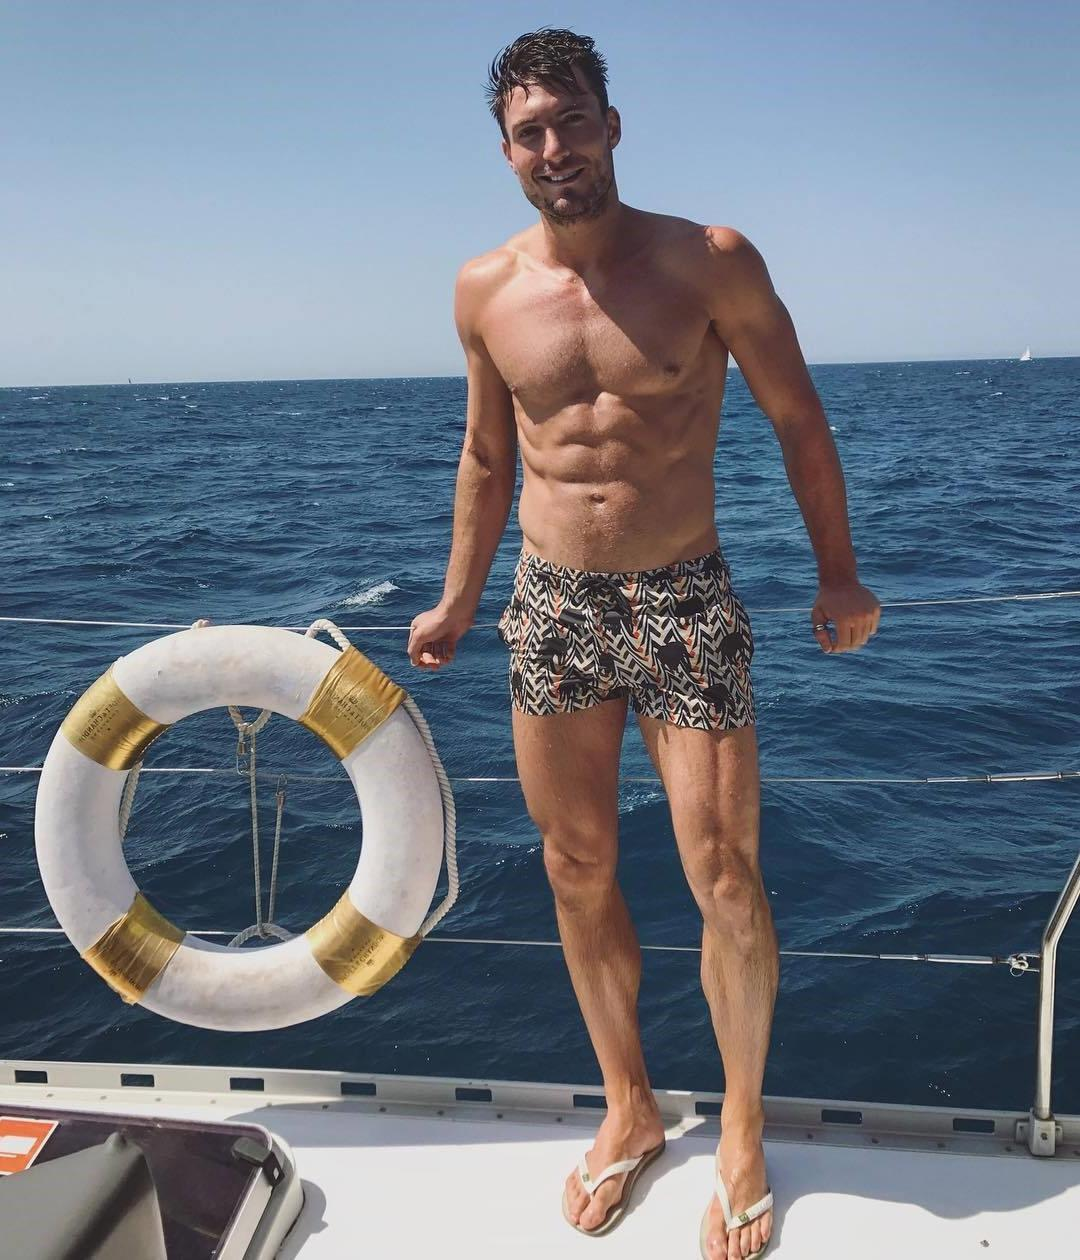 boat-party-sea-shirtless-handsome-dude-smiling-strong-male-legs-muscle-thighs